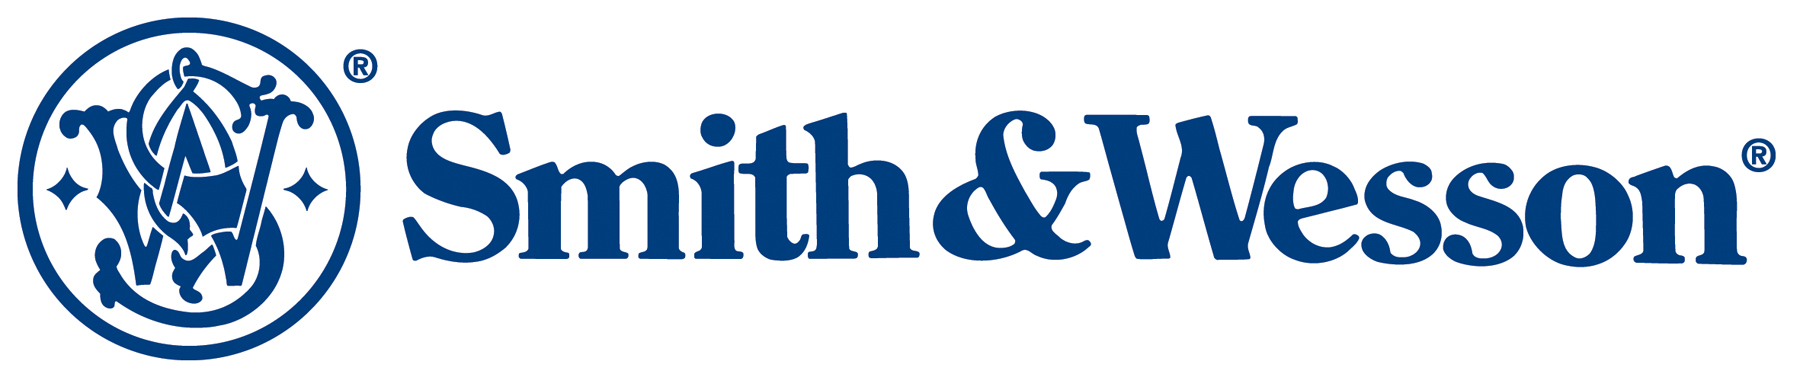 Smith & Wesson Brands, Inc.